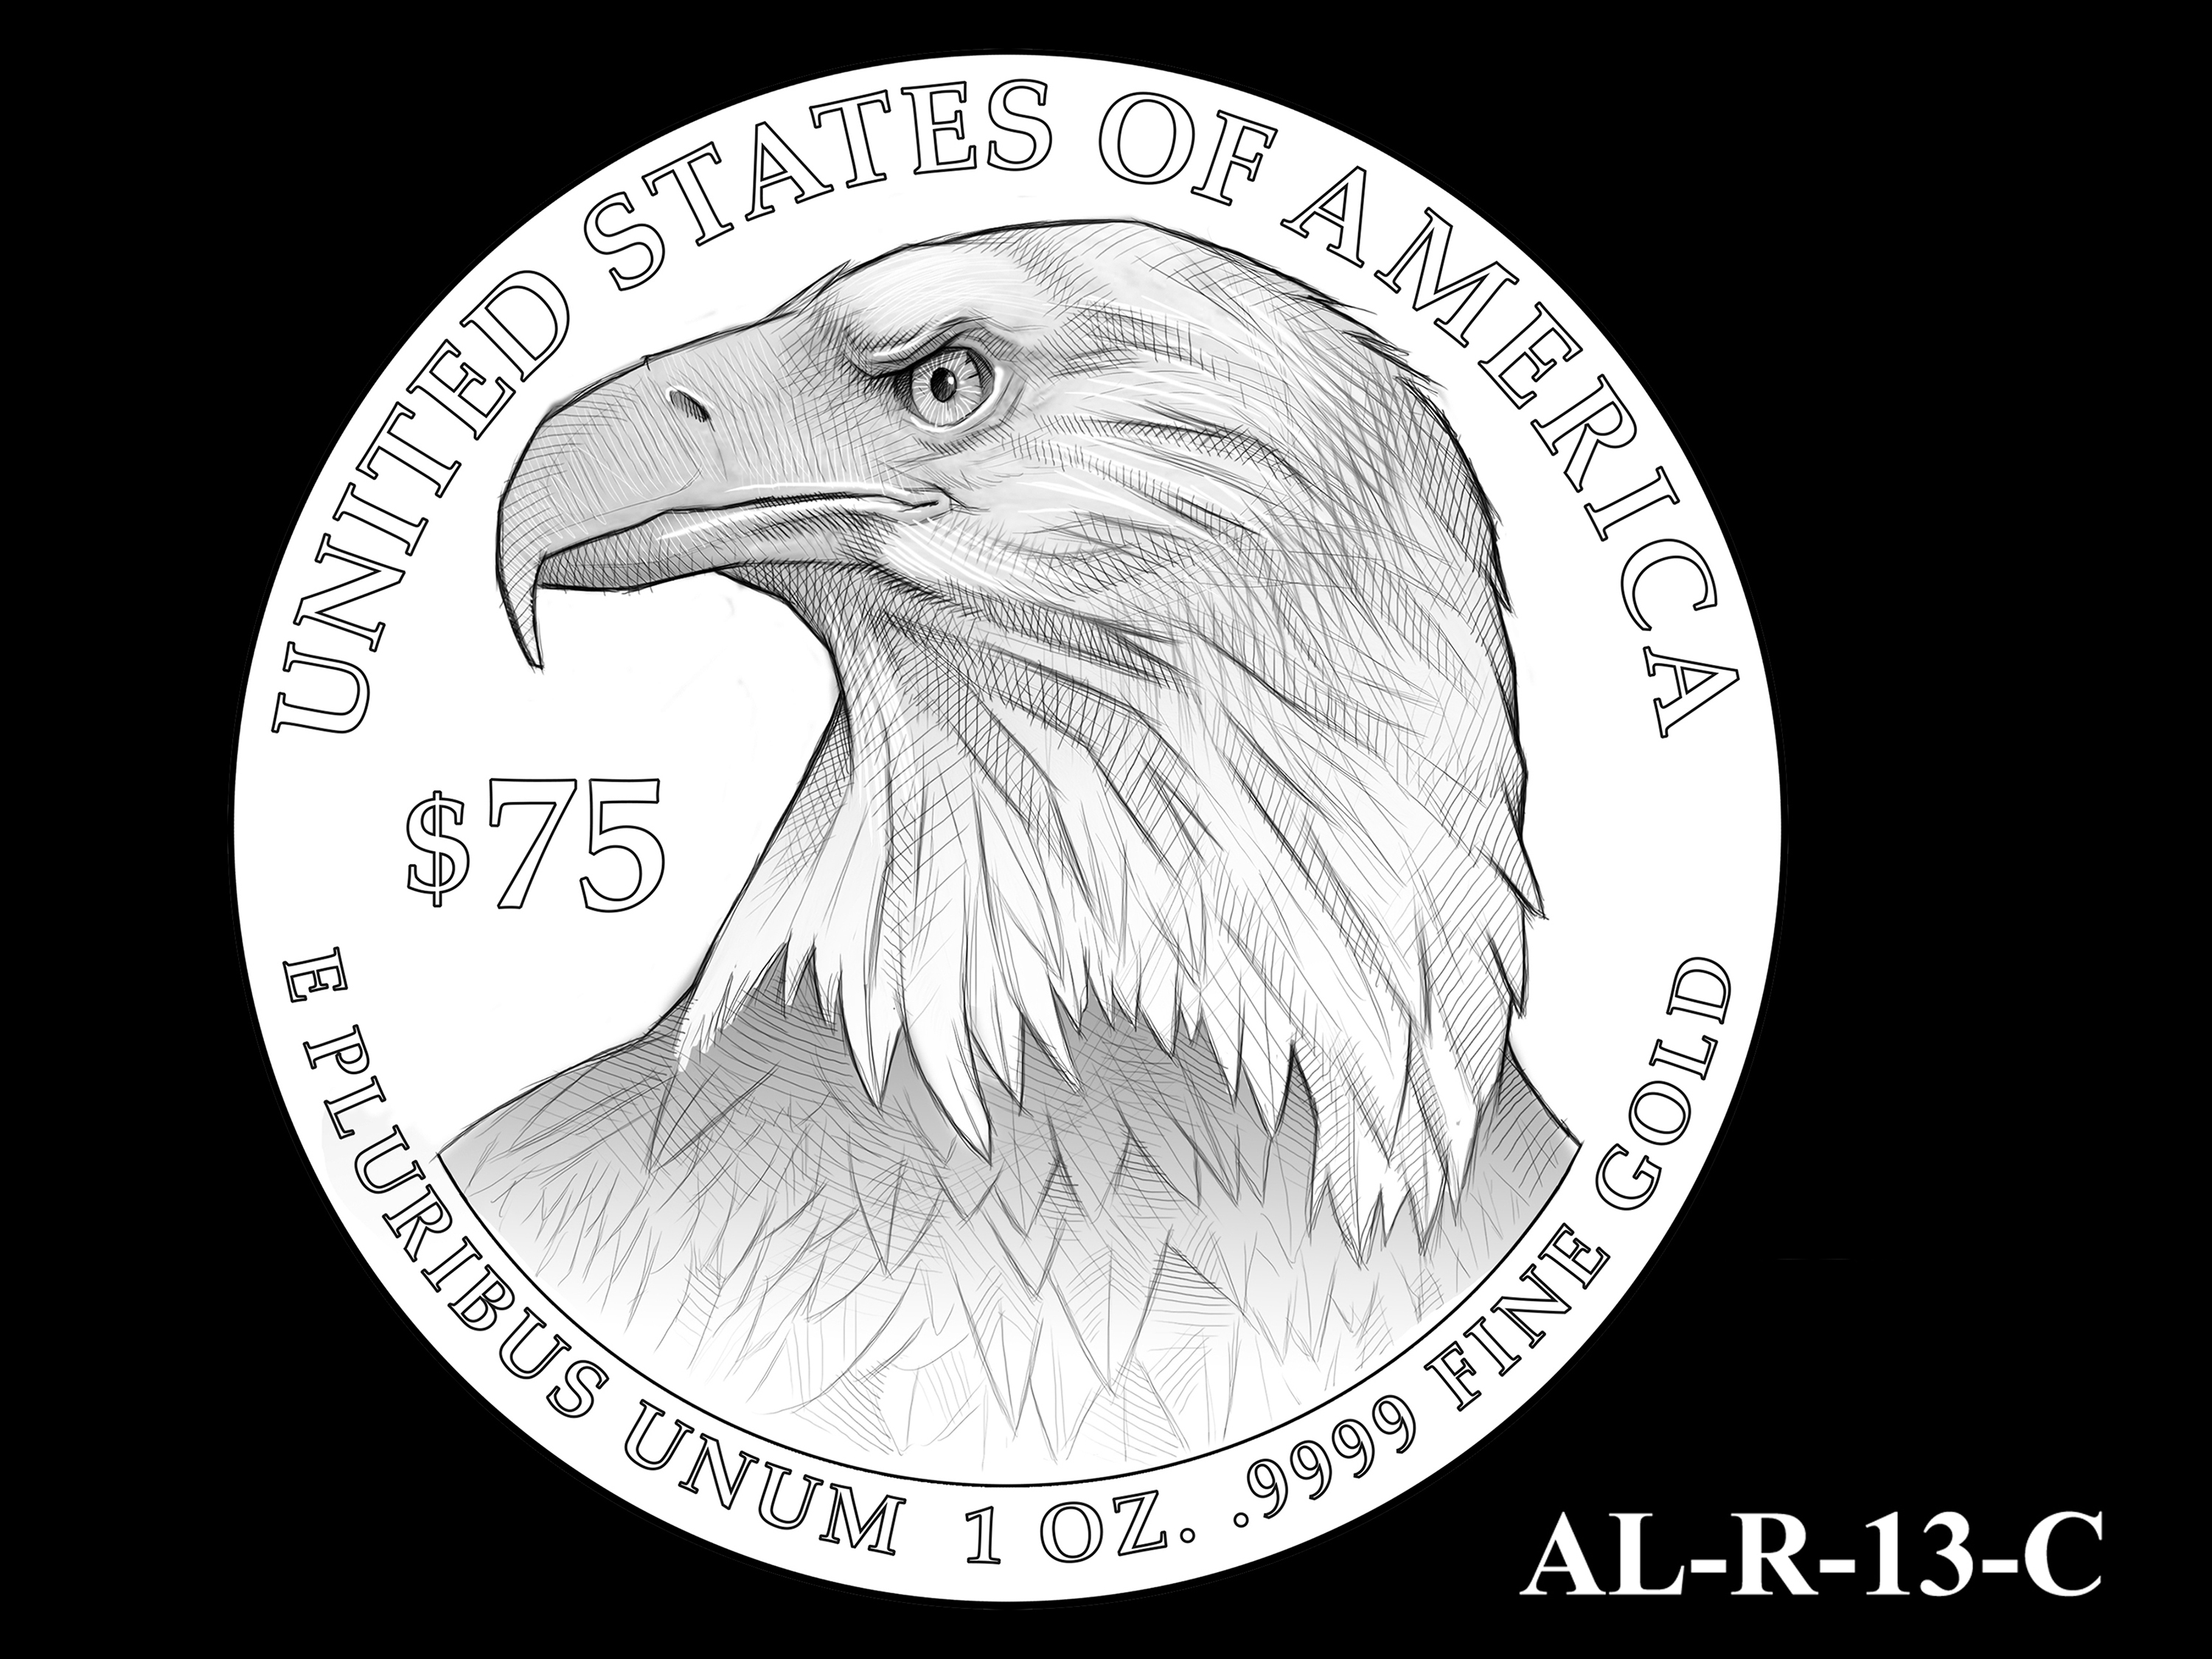 AL-R-13-C -- 2021 American Liberty Gold Coin and Silver Medal Program - Reverse